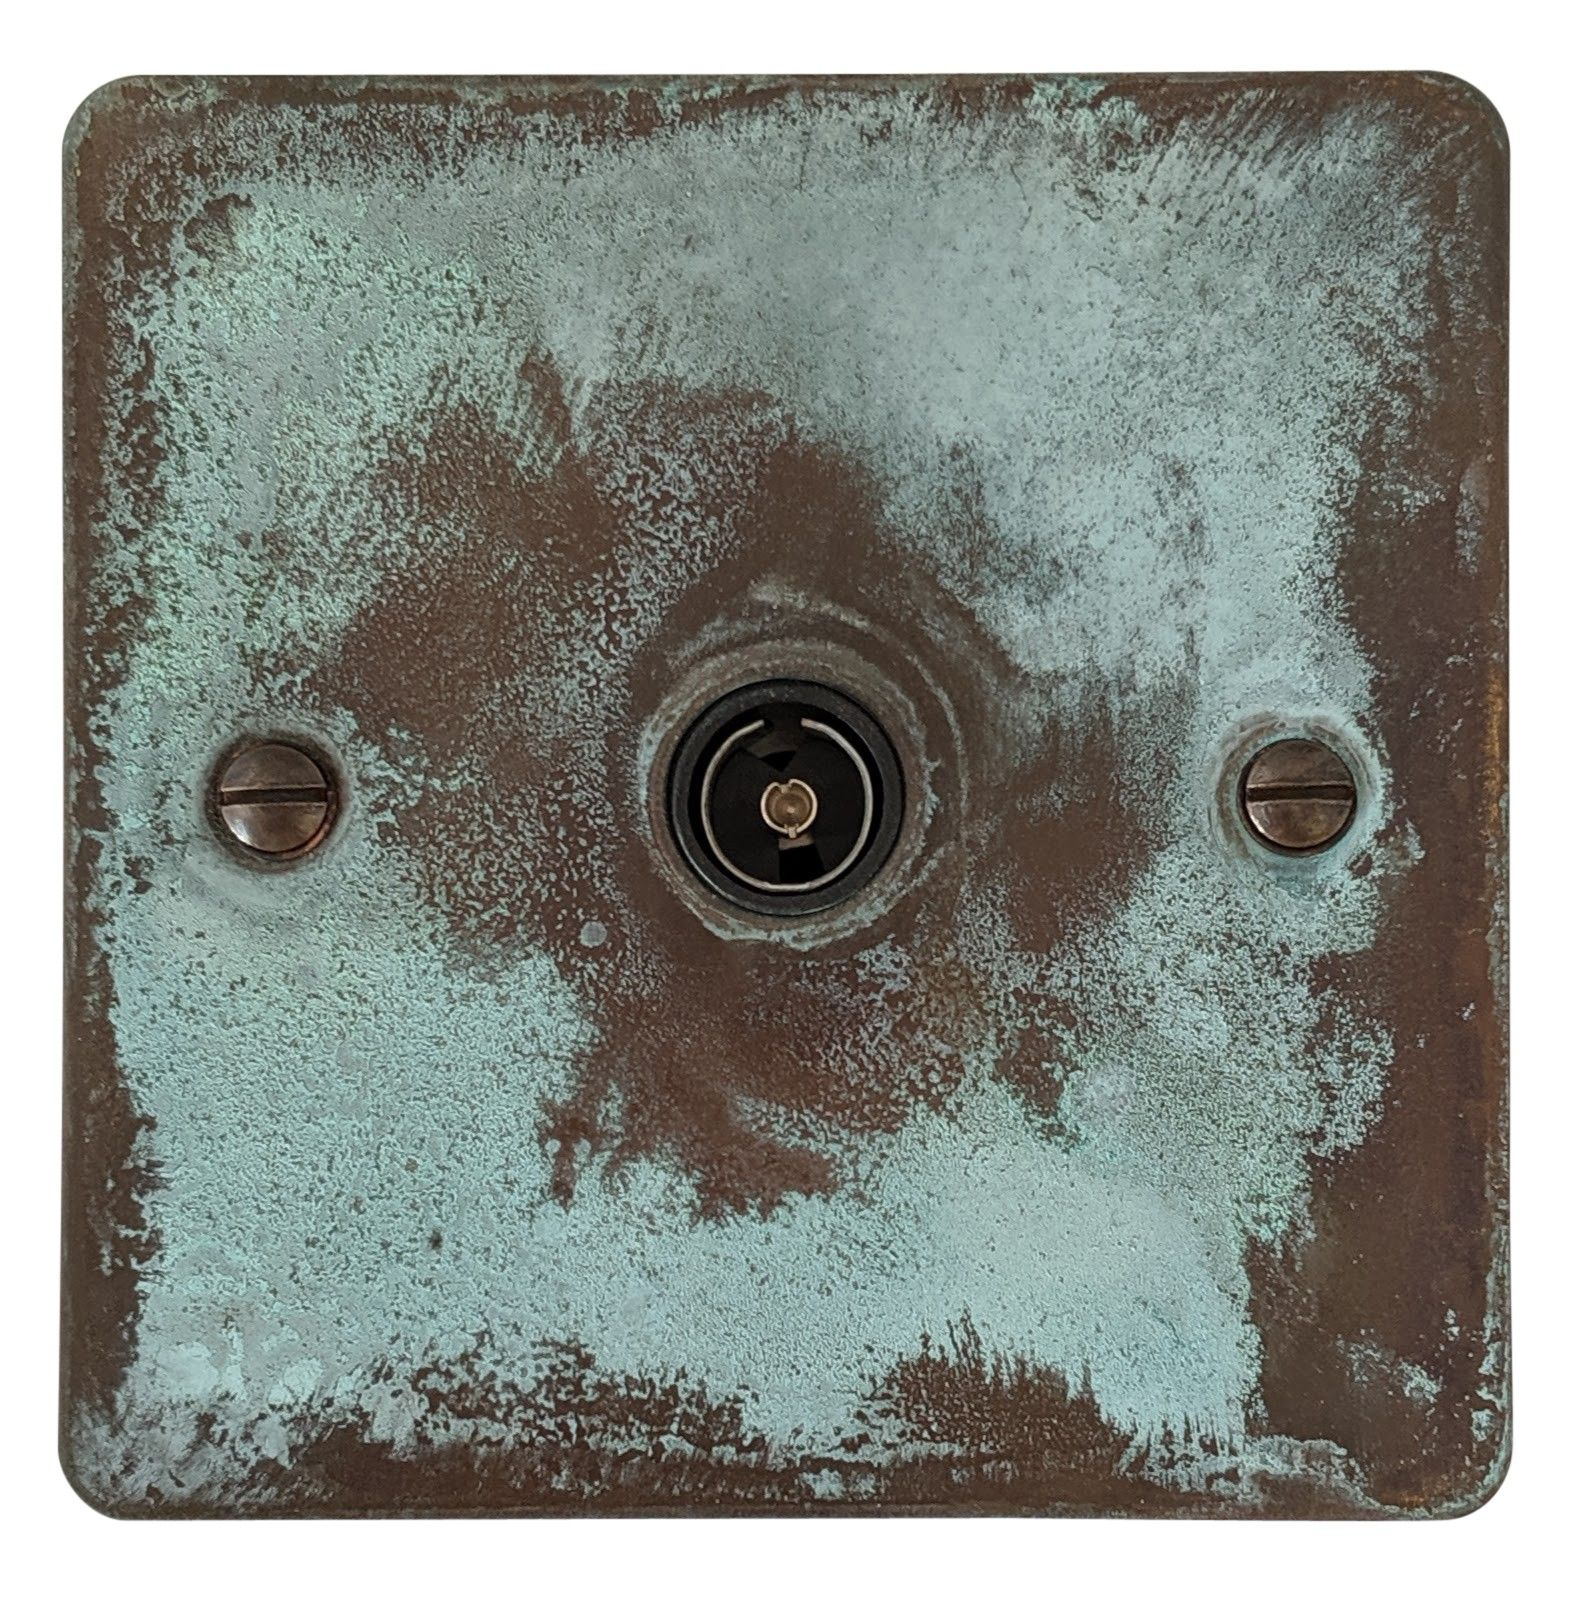 G&H FV35B Flat Plate Verdigris 1 Gang TV Coax Socket Point